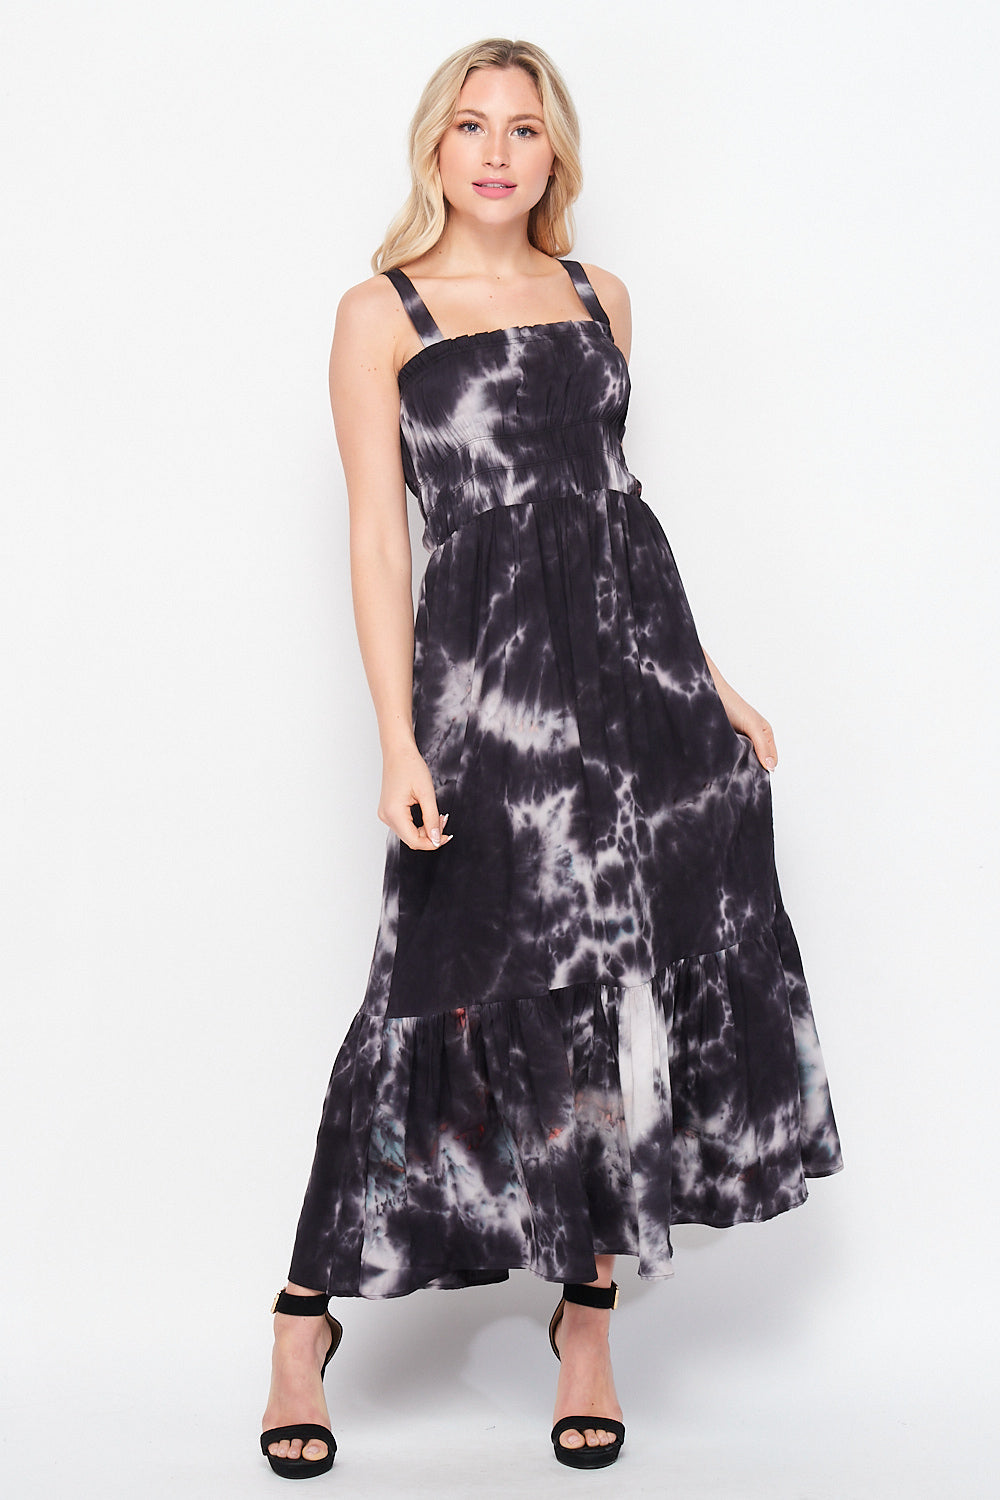 Spring Awakening Maxi Dress w/ Pocket | Tie Dye - Velvet Torch